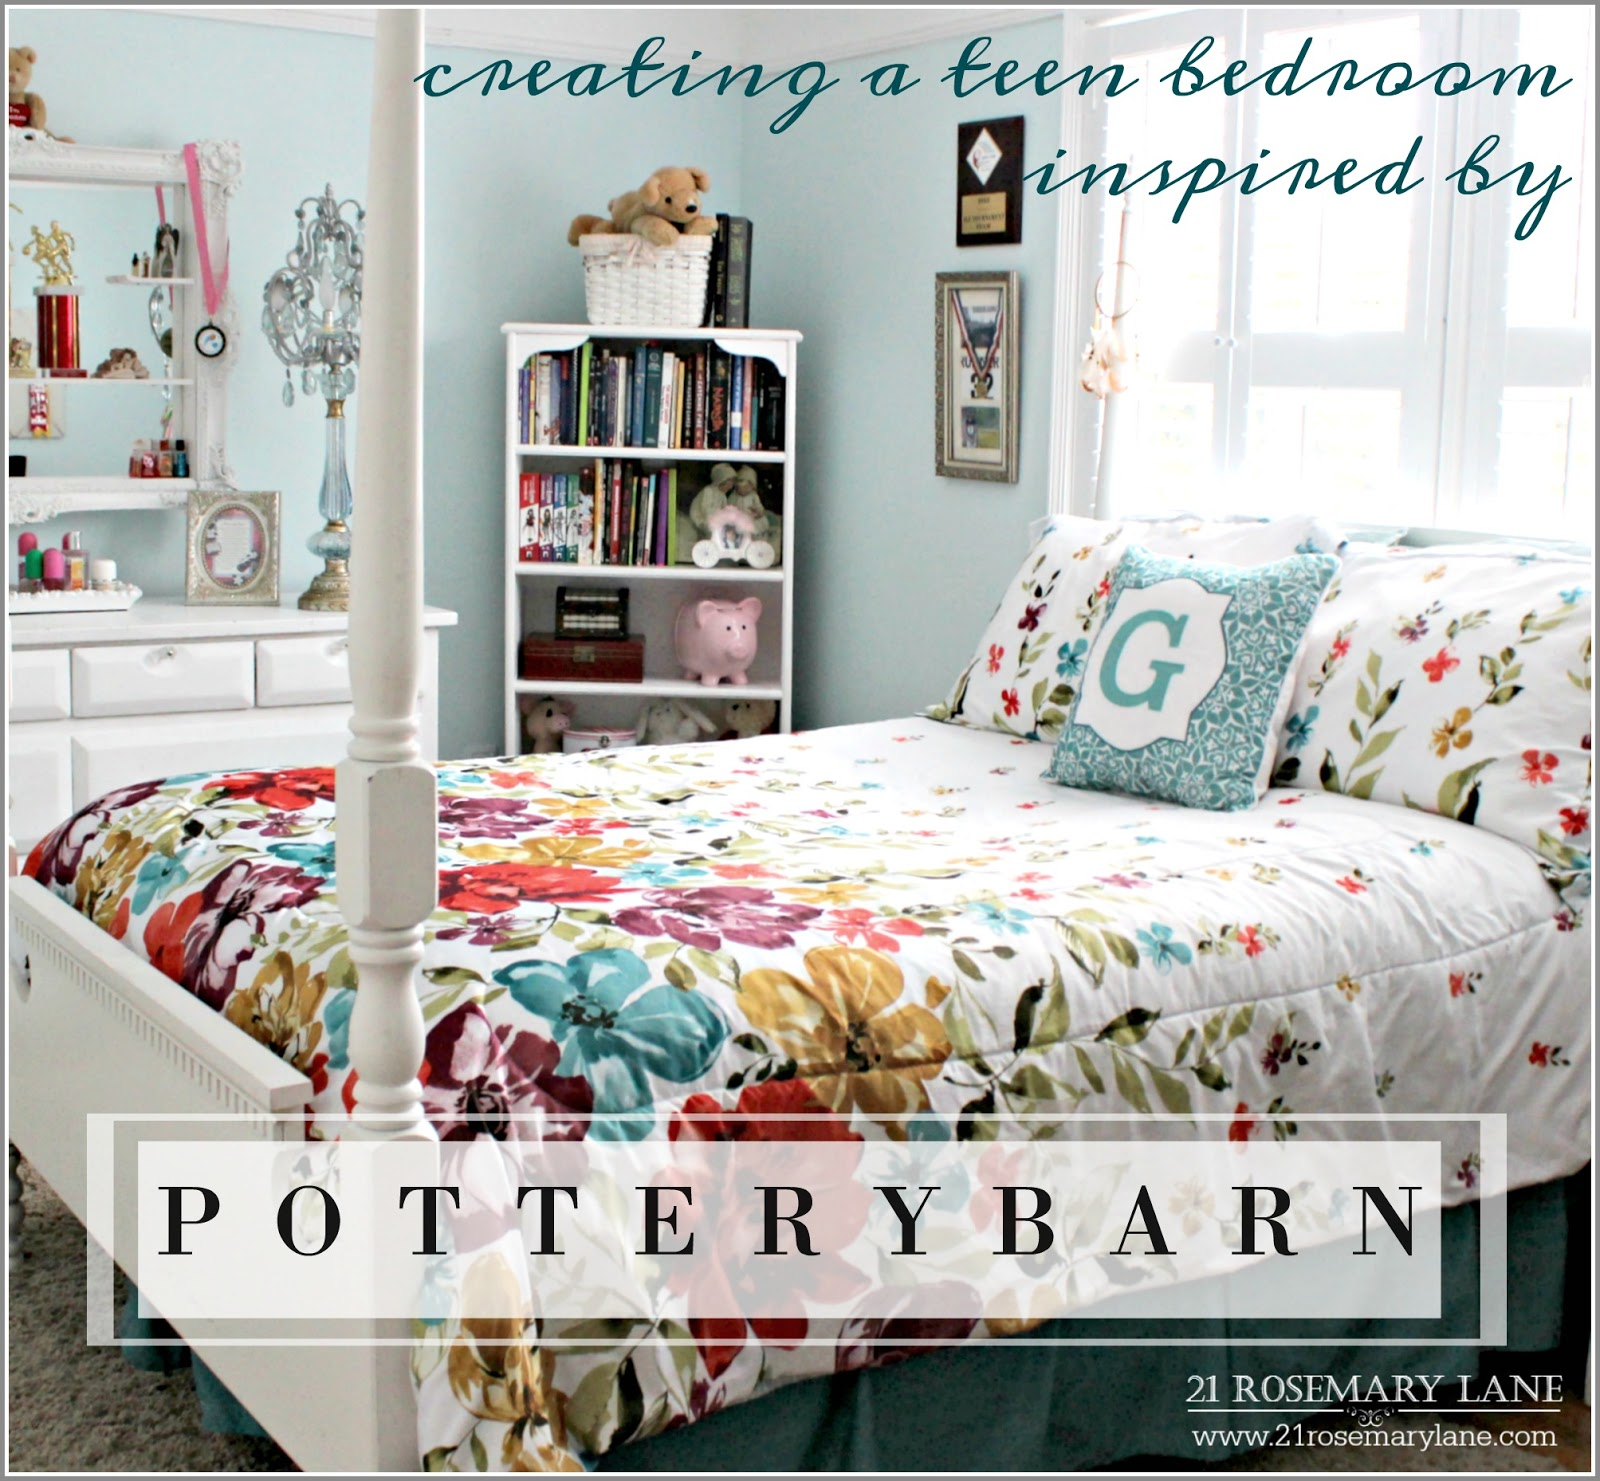 Ideas For A Teenage Girl S Bedroom Inspired By P O T T E R Y B A R N